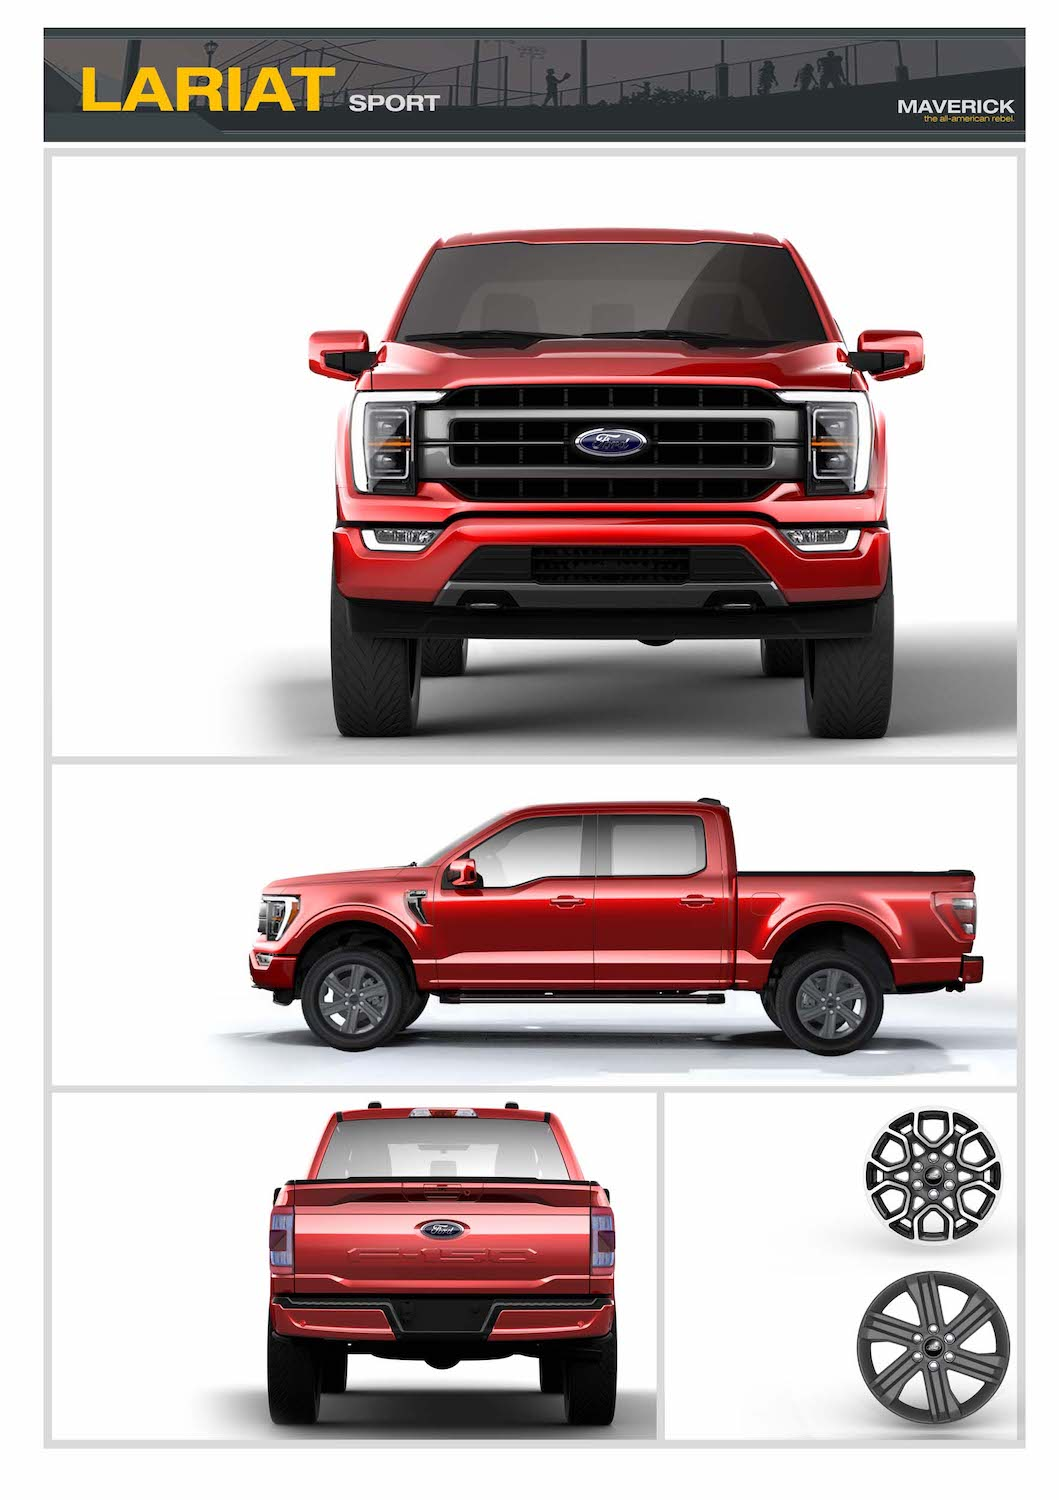 2018 Ford F-150 2.7L EcoBoost V-6 4x2 SuperCrew... | Car and Driver